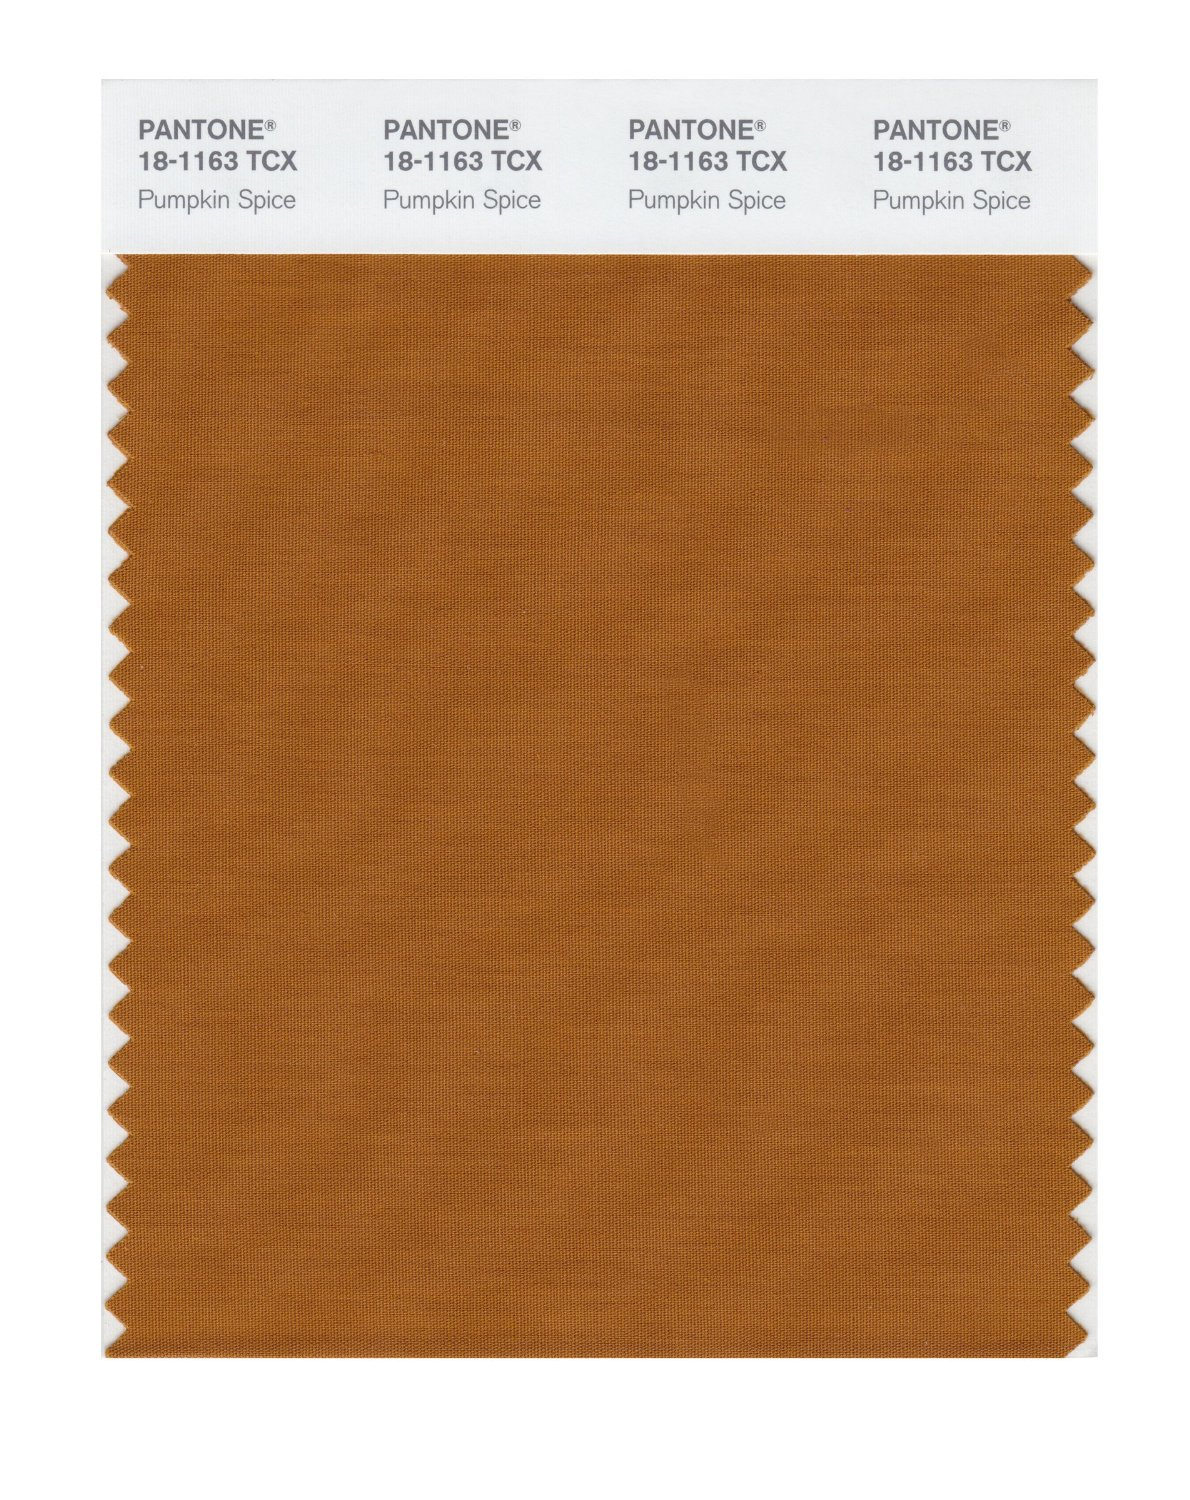 Pantone Smart Swatch 18-1163 Pumpkin Spice